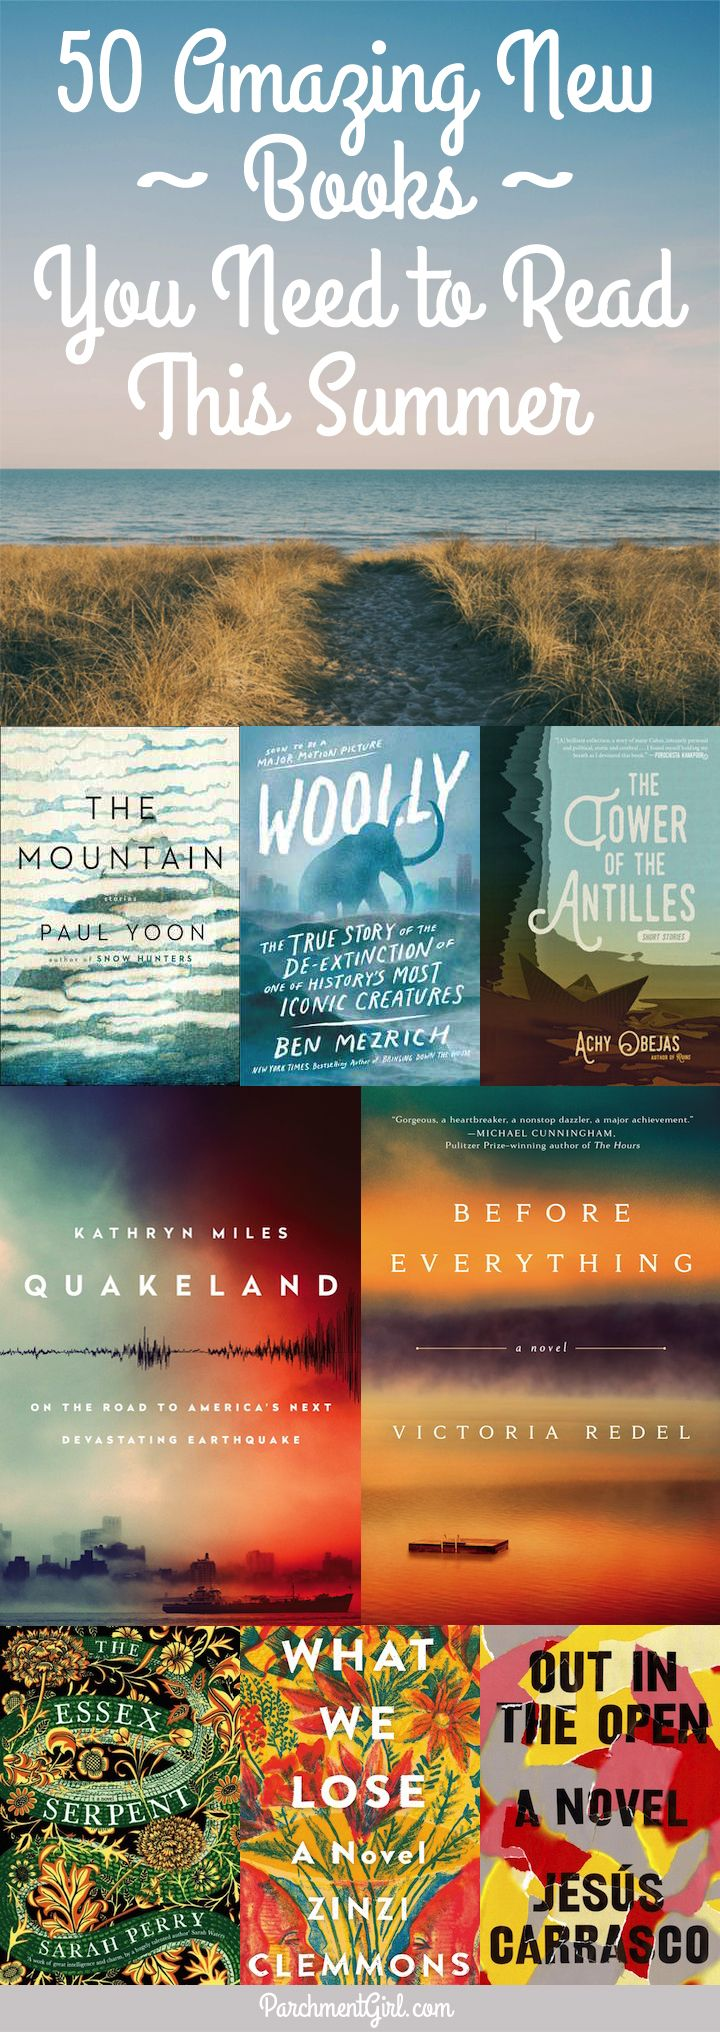 Looking for the perfect book to bring to the beach? Check out this EPIC list of hot new books hitting stores this summer!